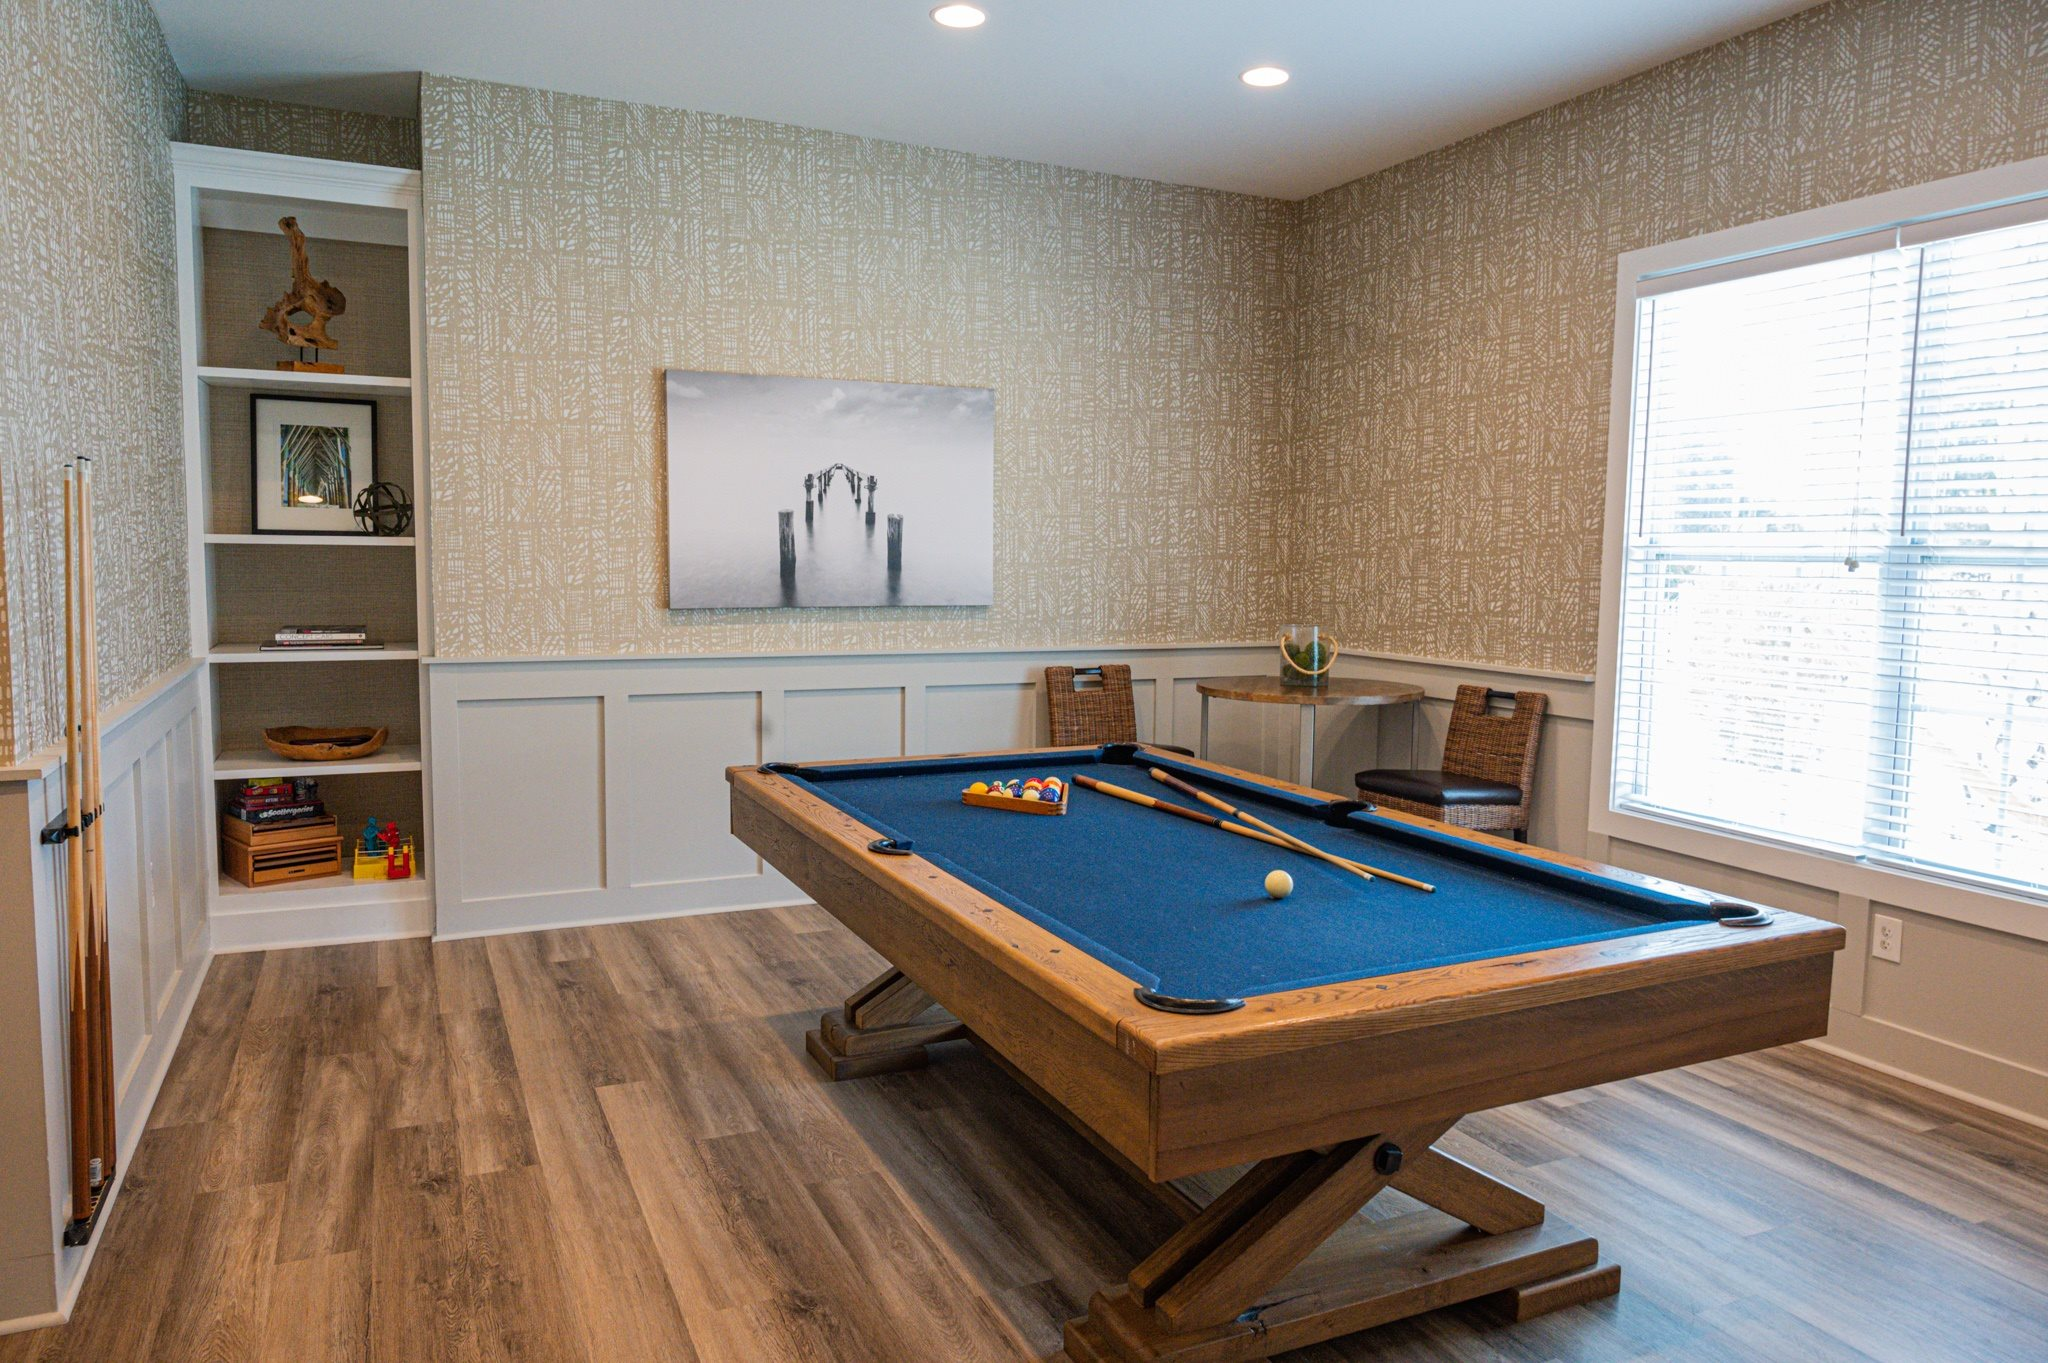 Billiards Table at Stephens Pointe Apartments in Wilmington, NC